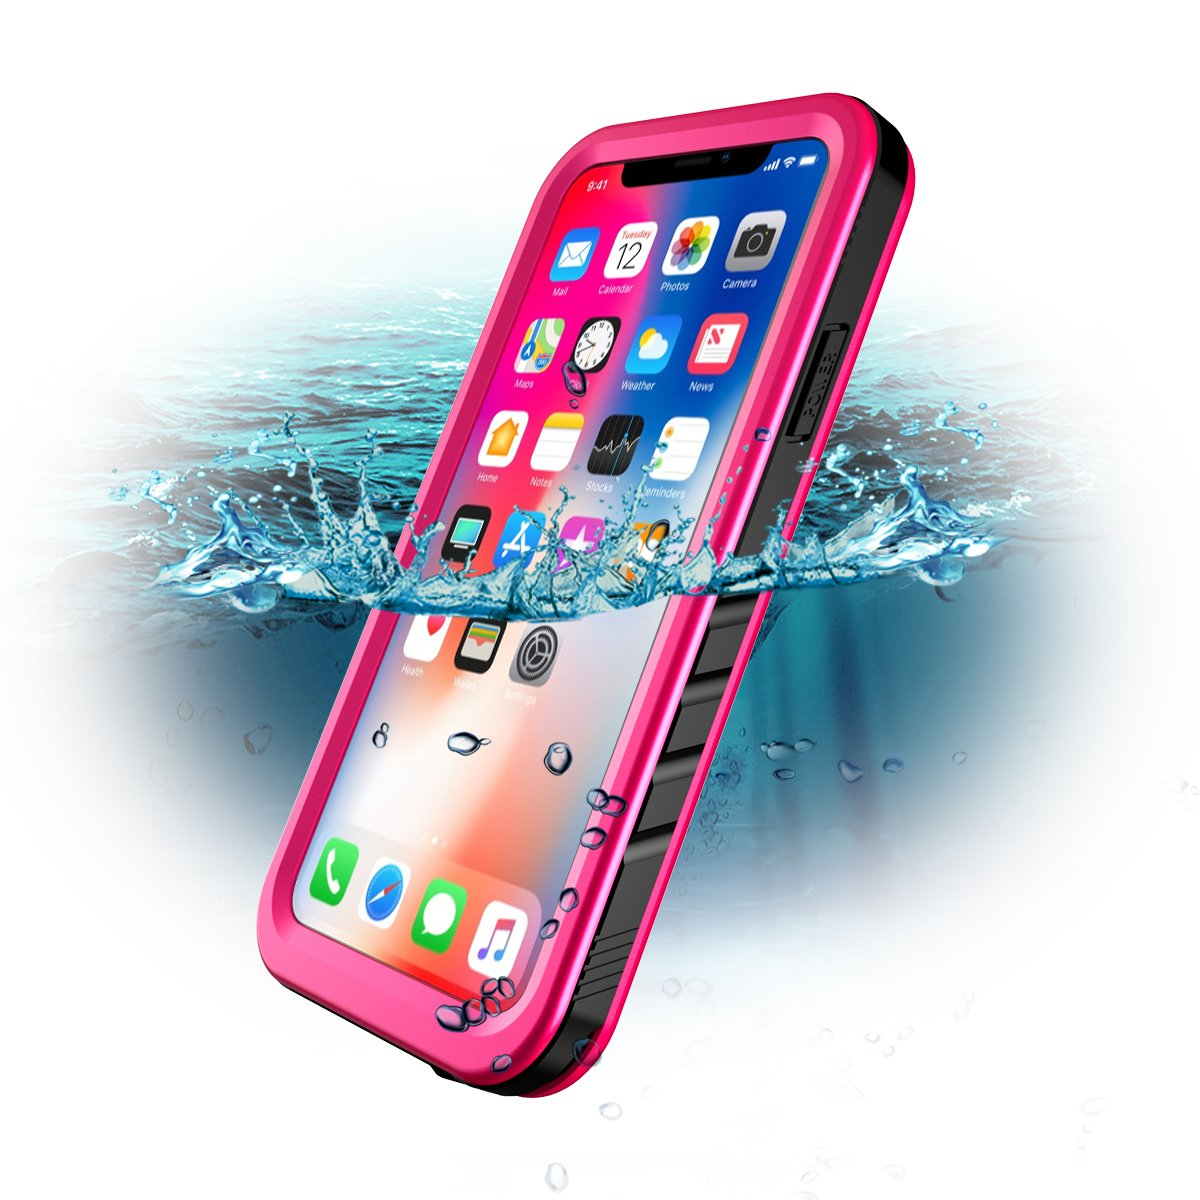 iPhone X Waterproof Case, Sportlink Wireless Charging Support Full Body Protective Rugged Case Shockproof with Built-in Screen Protector for Apple iPhone X 2017/iPhone 10 Release (Pink)